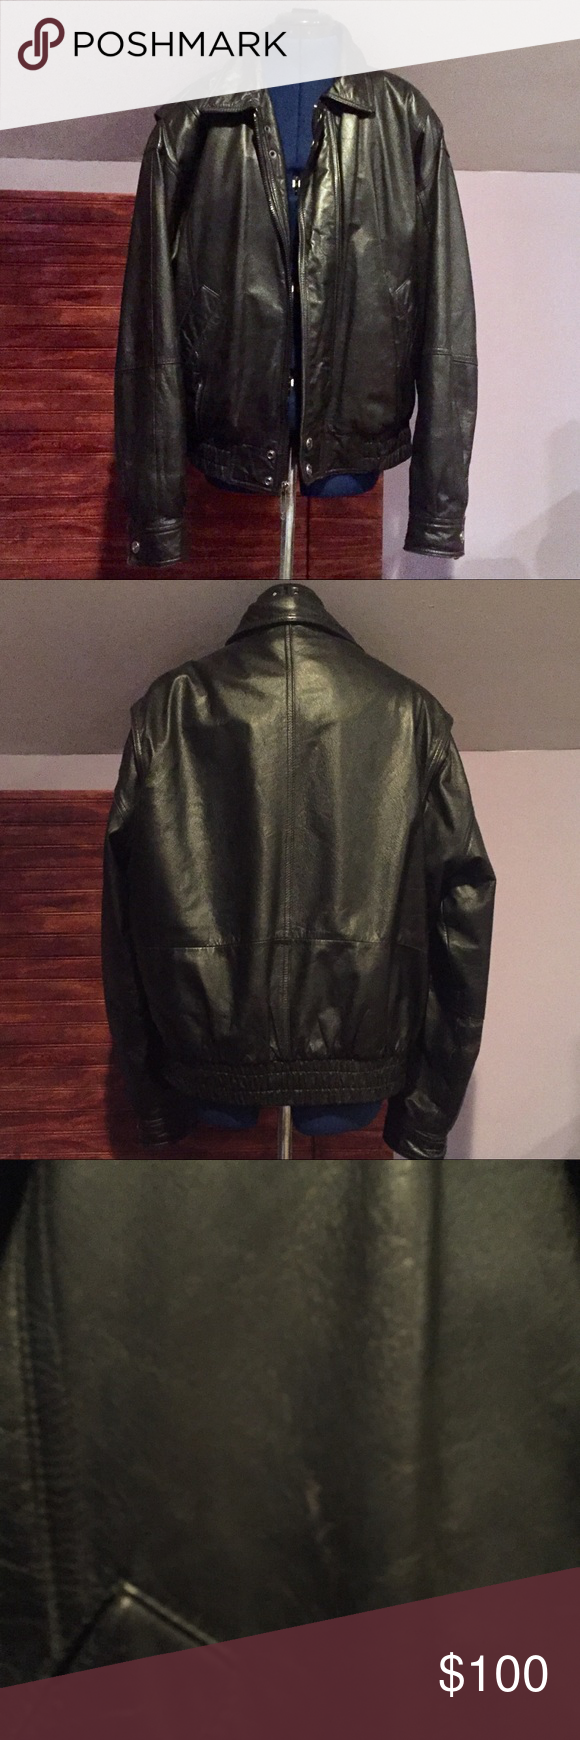 Wilsons Leather Black Bomber Jacket Wilsons leather